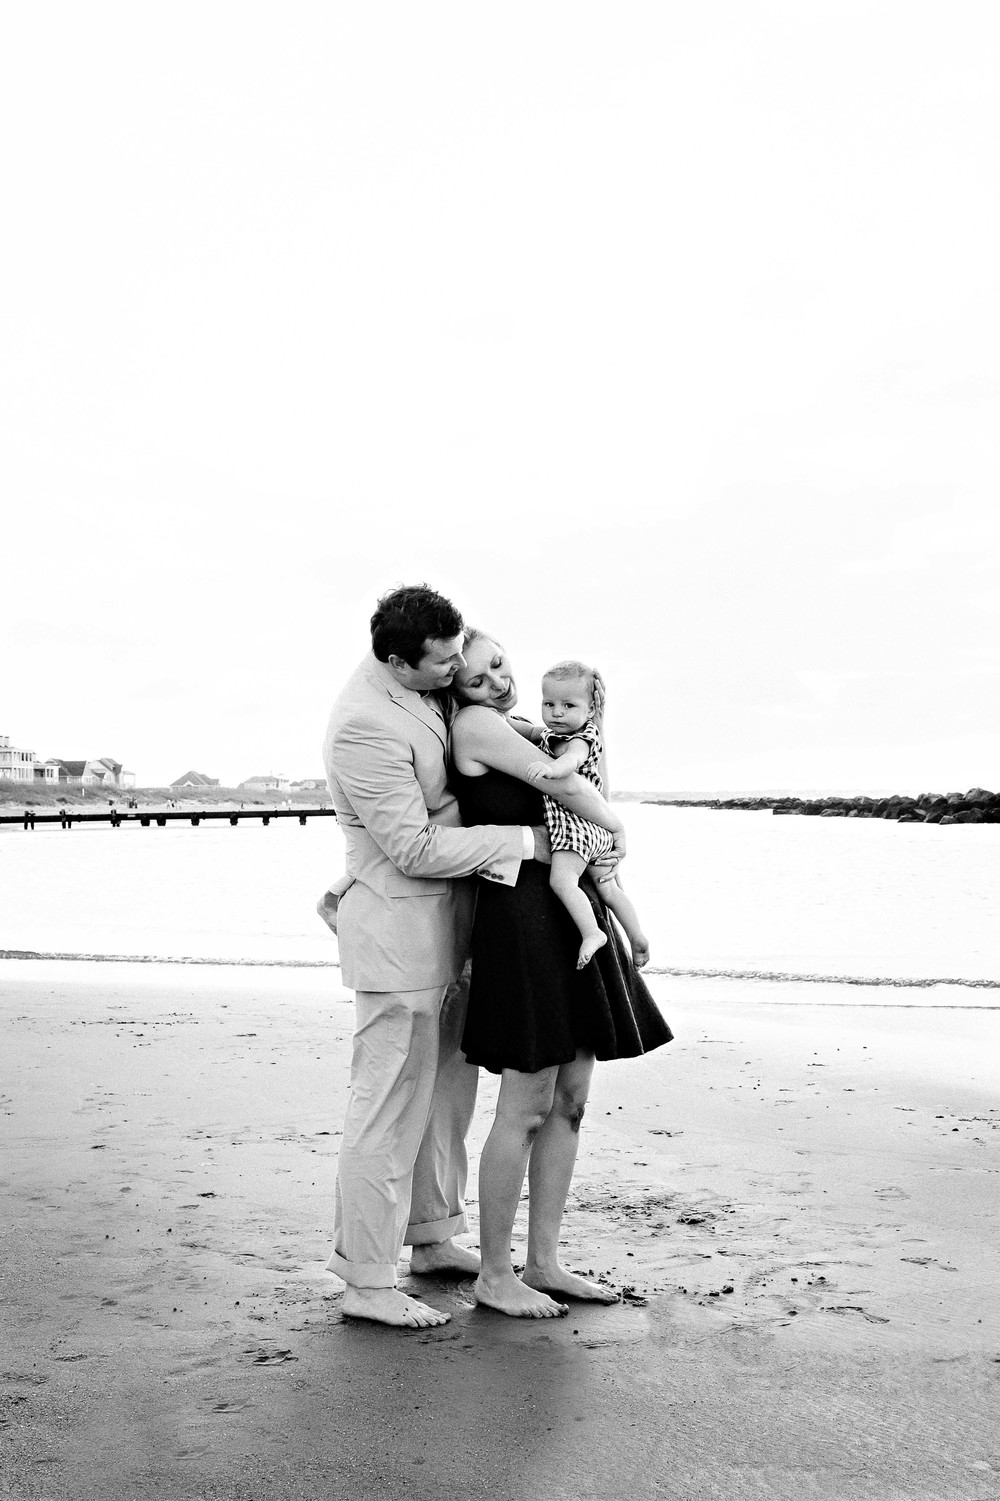 virginia-beach-sandbridge-photographer-family-beach-session-east-beach-norfolk-melissa-bliss-photography